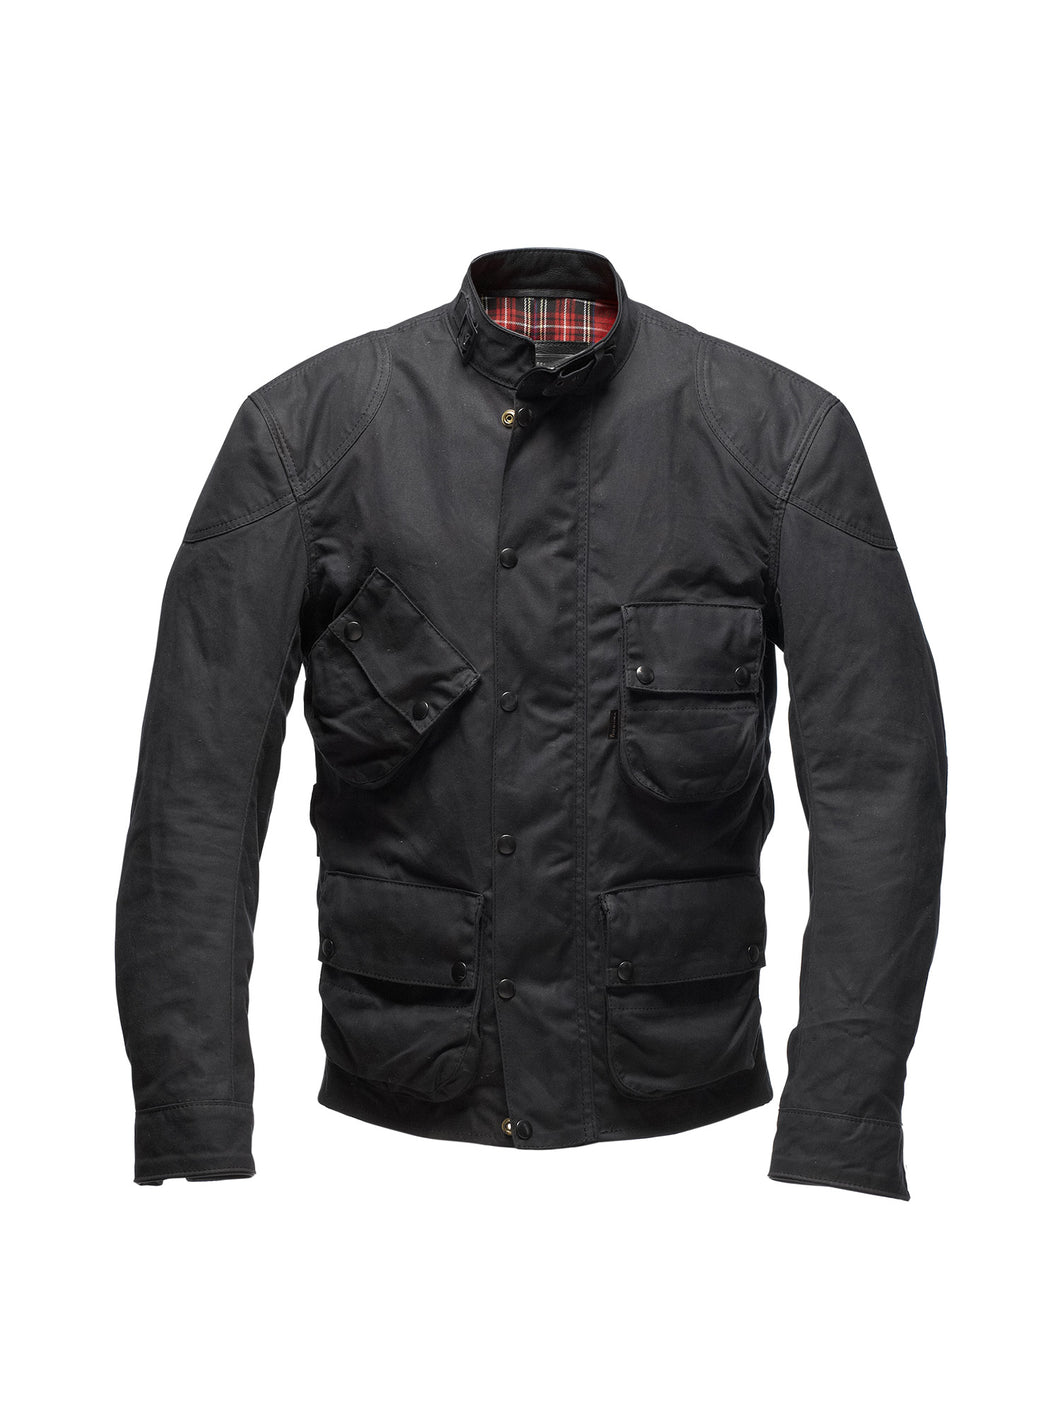 Union Garage Robinson Jacket